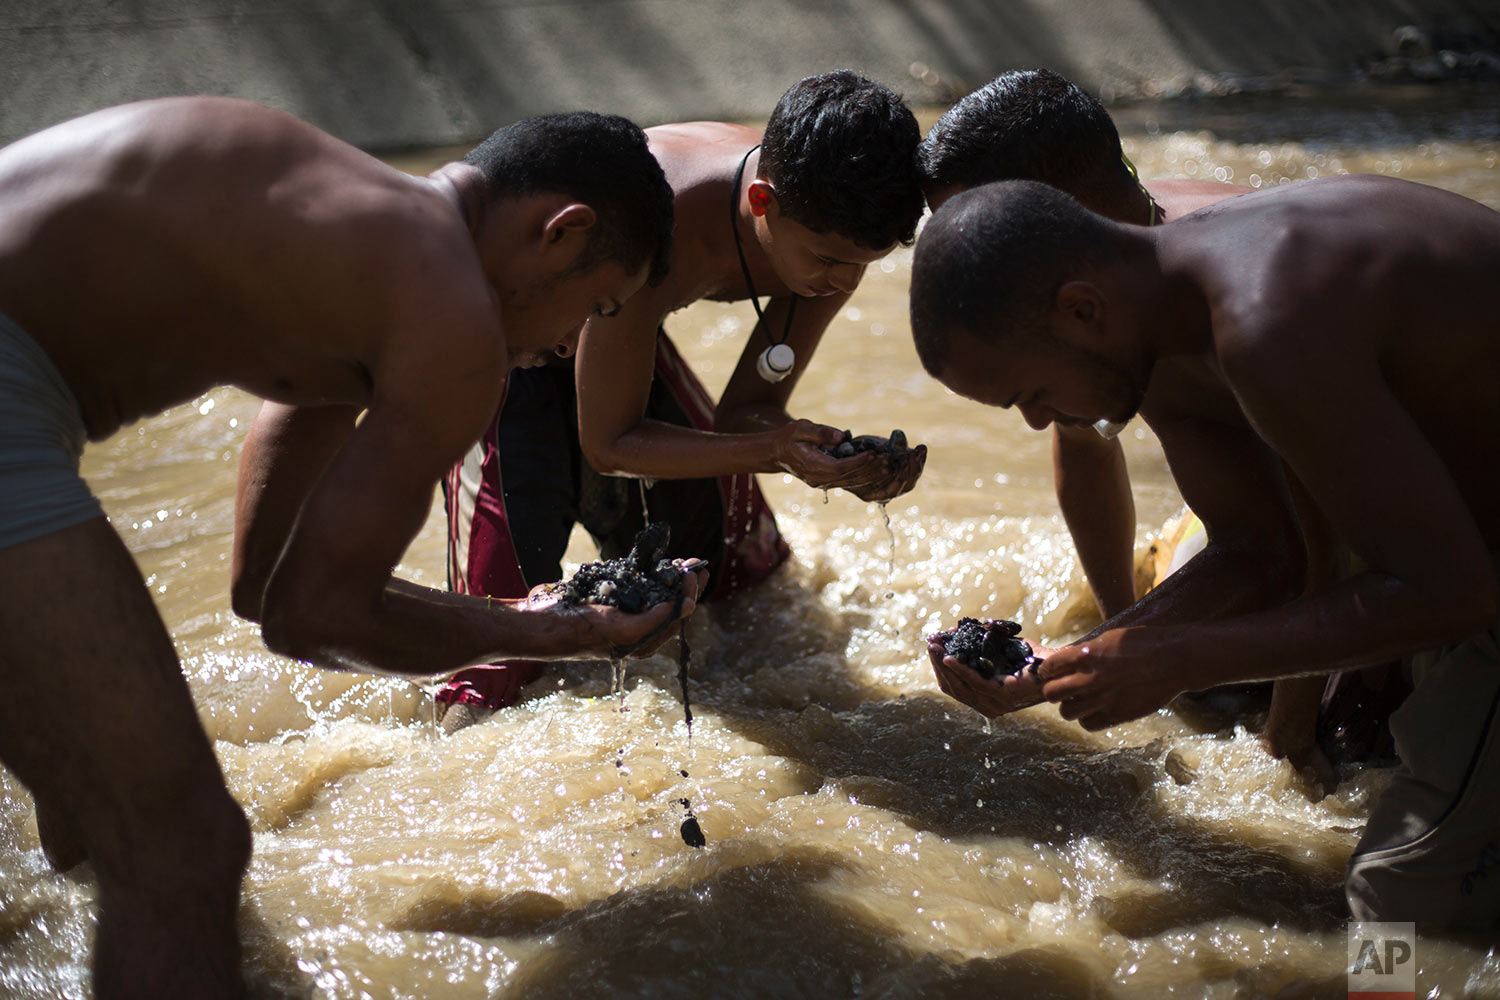 In this Dec. 5, 2017 photo, Angel Villanueva, right, looks for pieces of gold and other valuables in the debris he scooped up from the bottom of the polluted Guaire River, alongside other scavengers, in Caracas, Venezuela. As the 25-year-old scavenges alongside his friends, he's mindful that flash flooding leaves just minutes to get out, or be washed away to his death. Villanueva said he buys food with the money he earns that comes from selling what he finds in the river. (AP Photo/Ariana Cubillos)